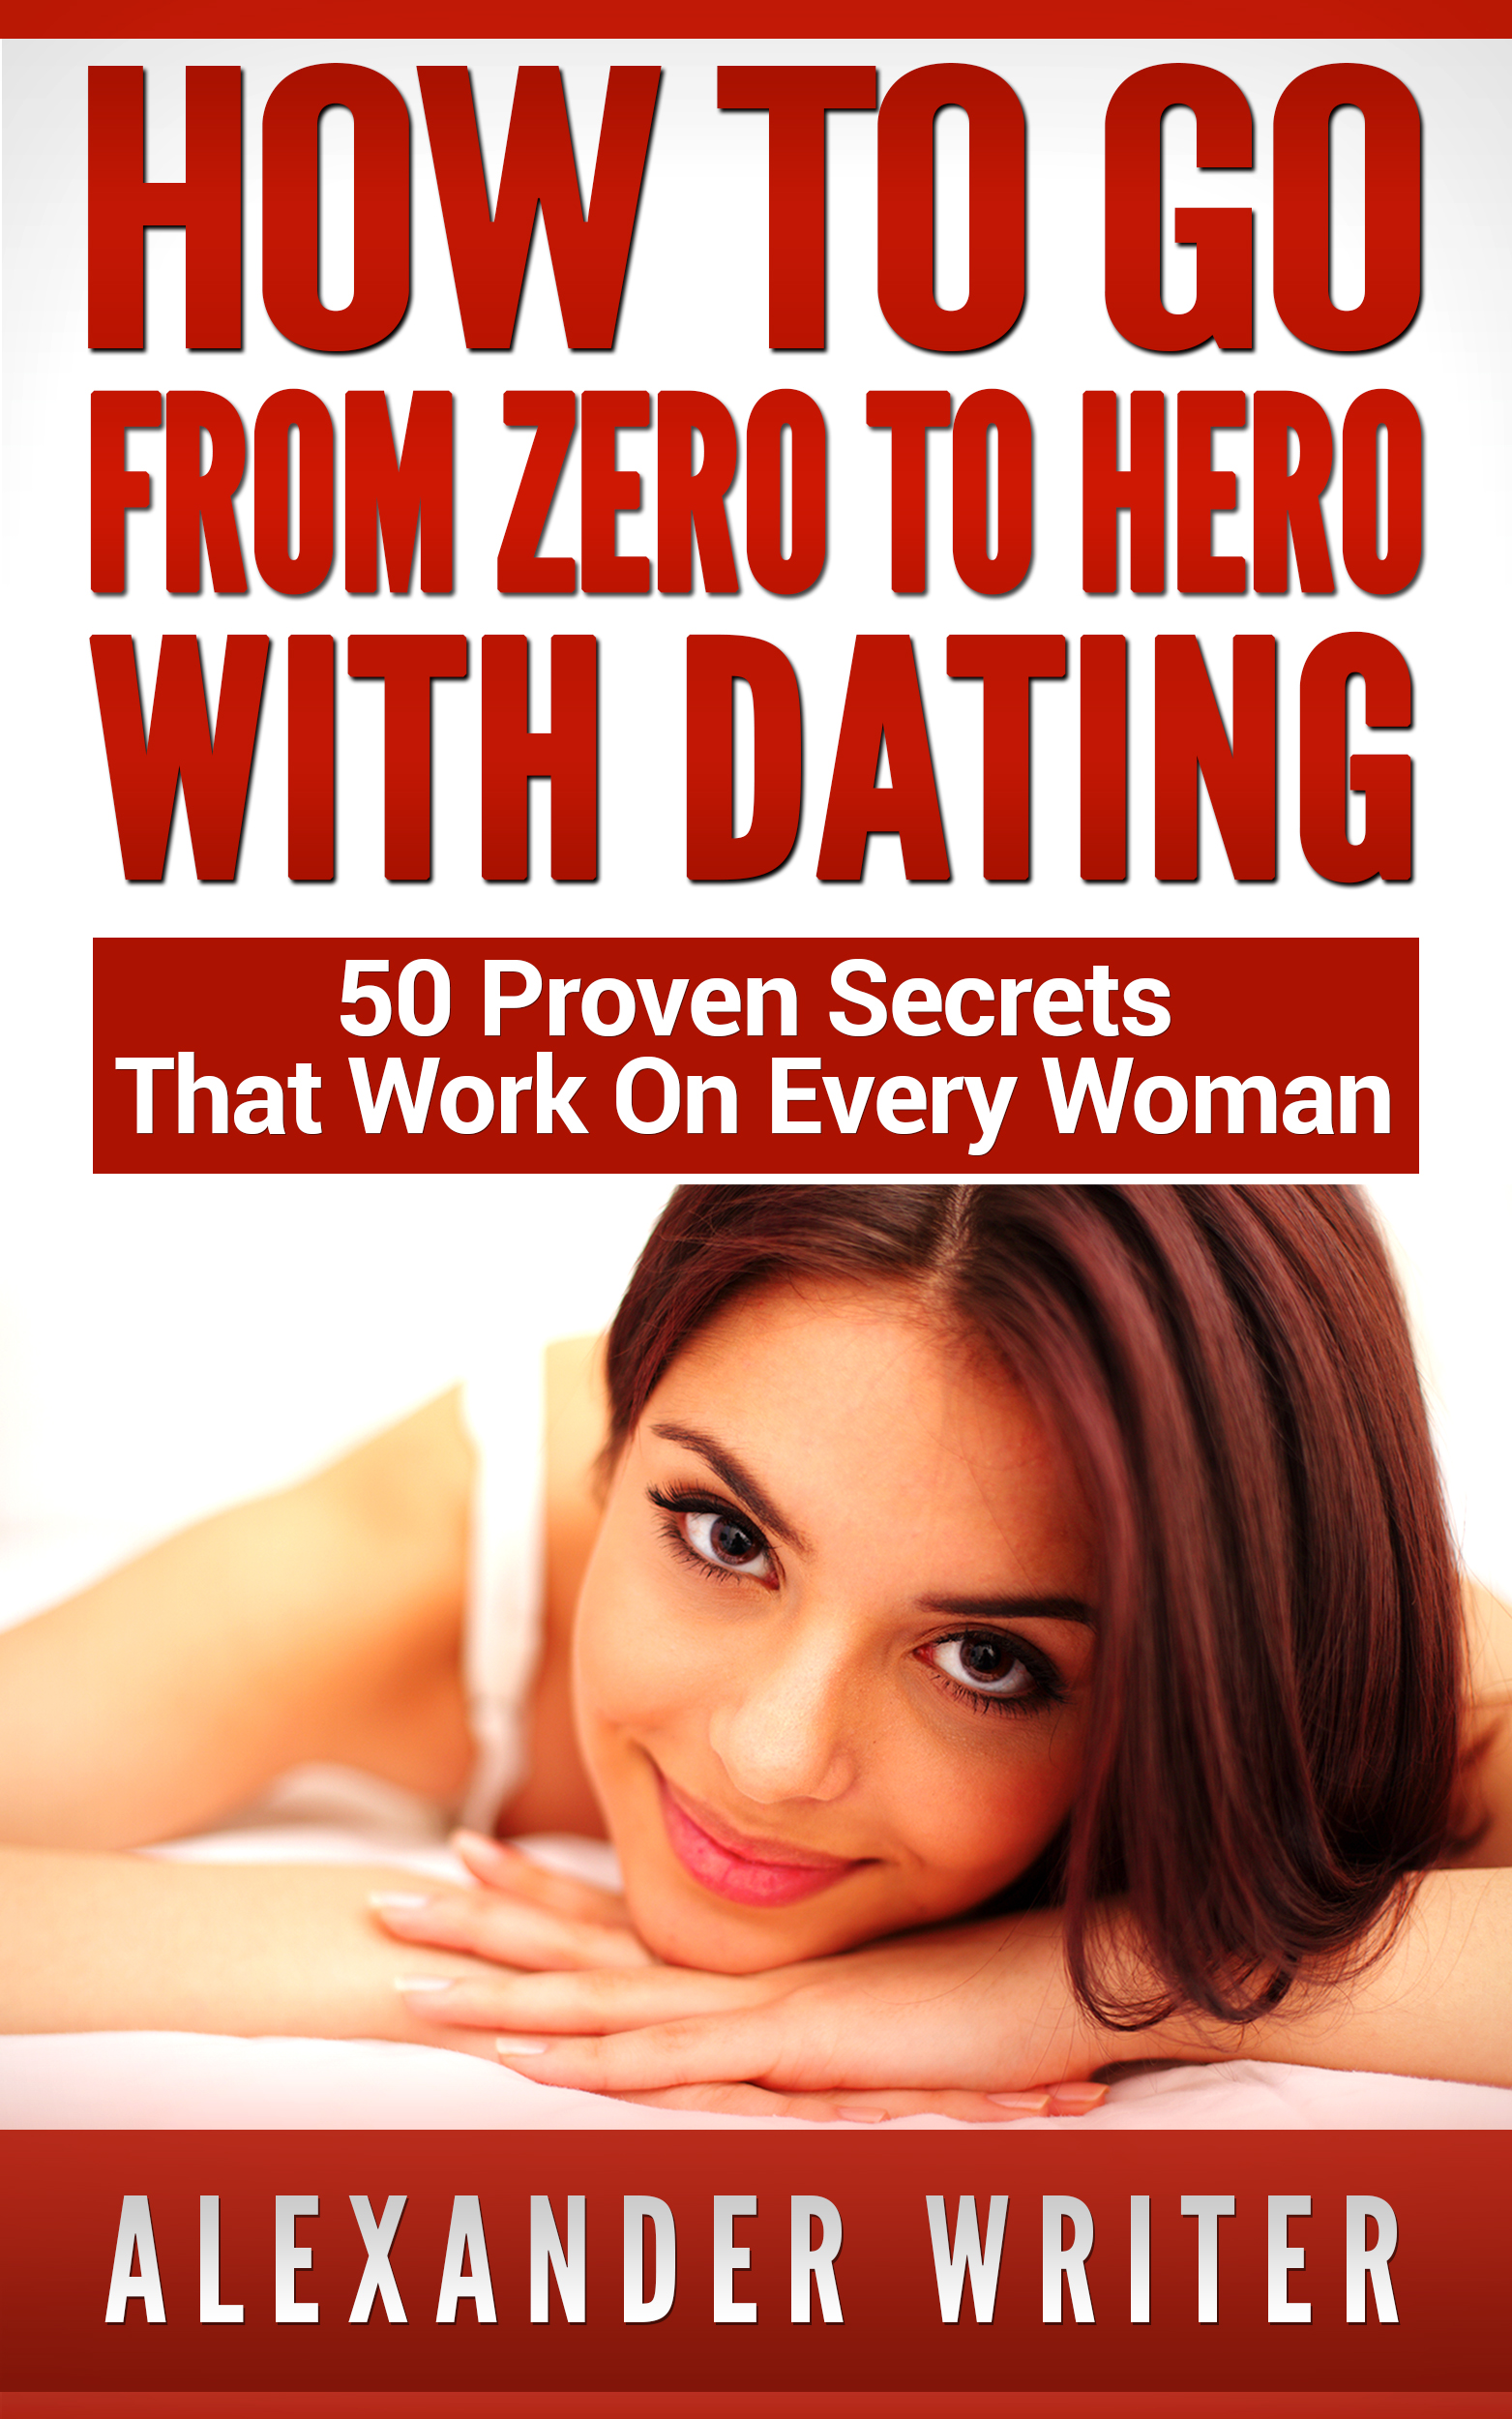 How To Go From Zero To Hero With Women